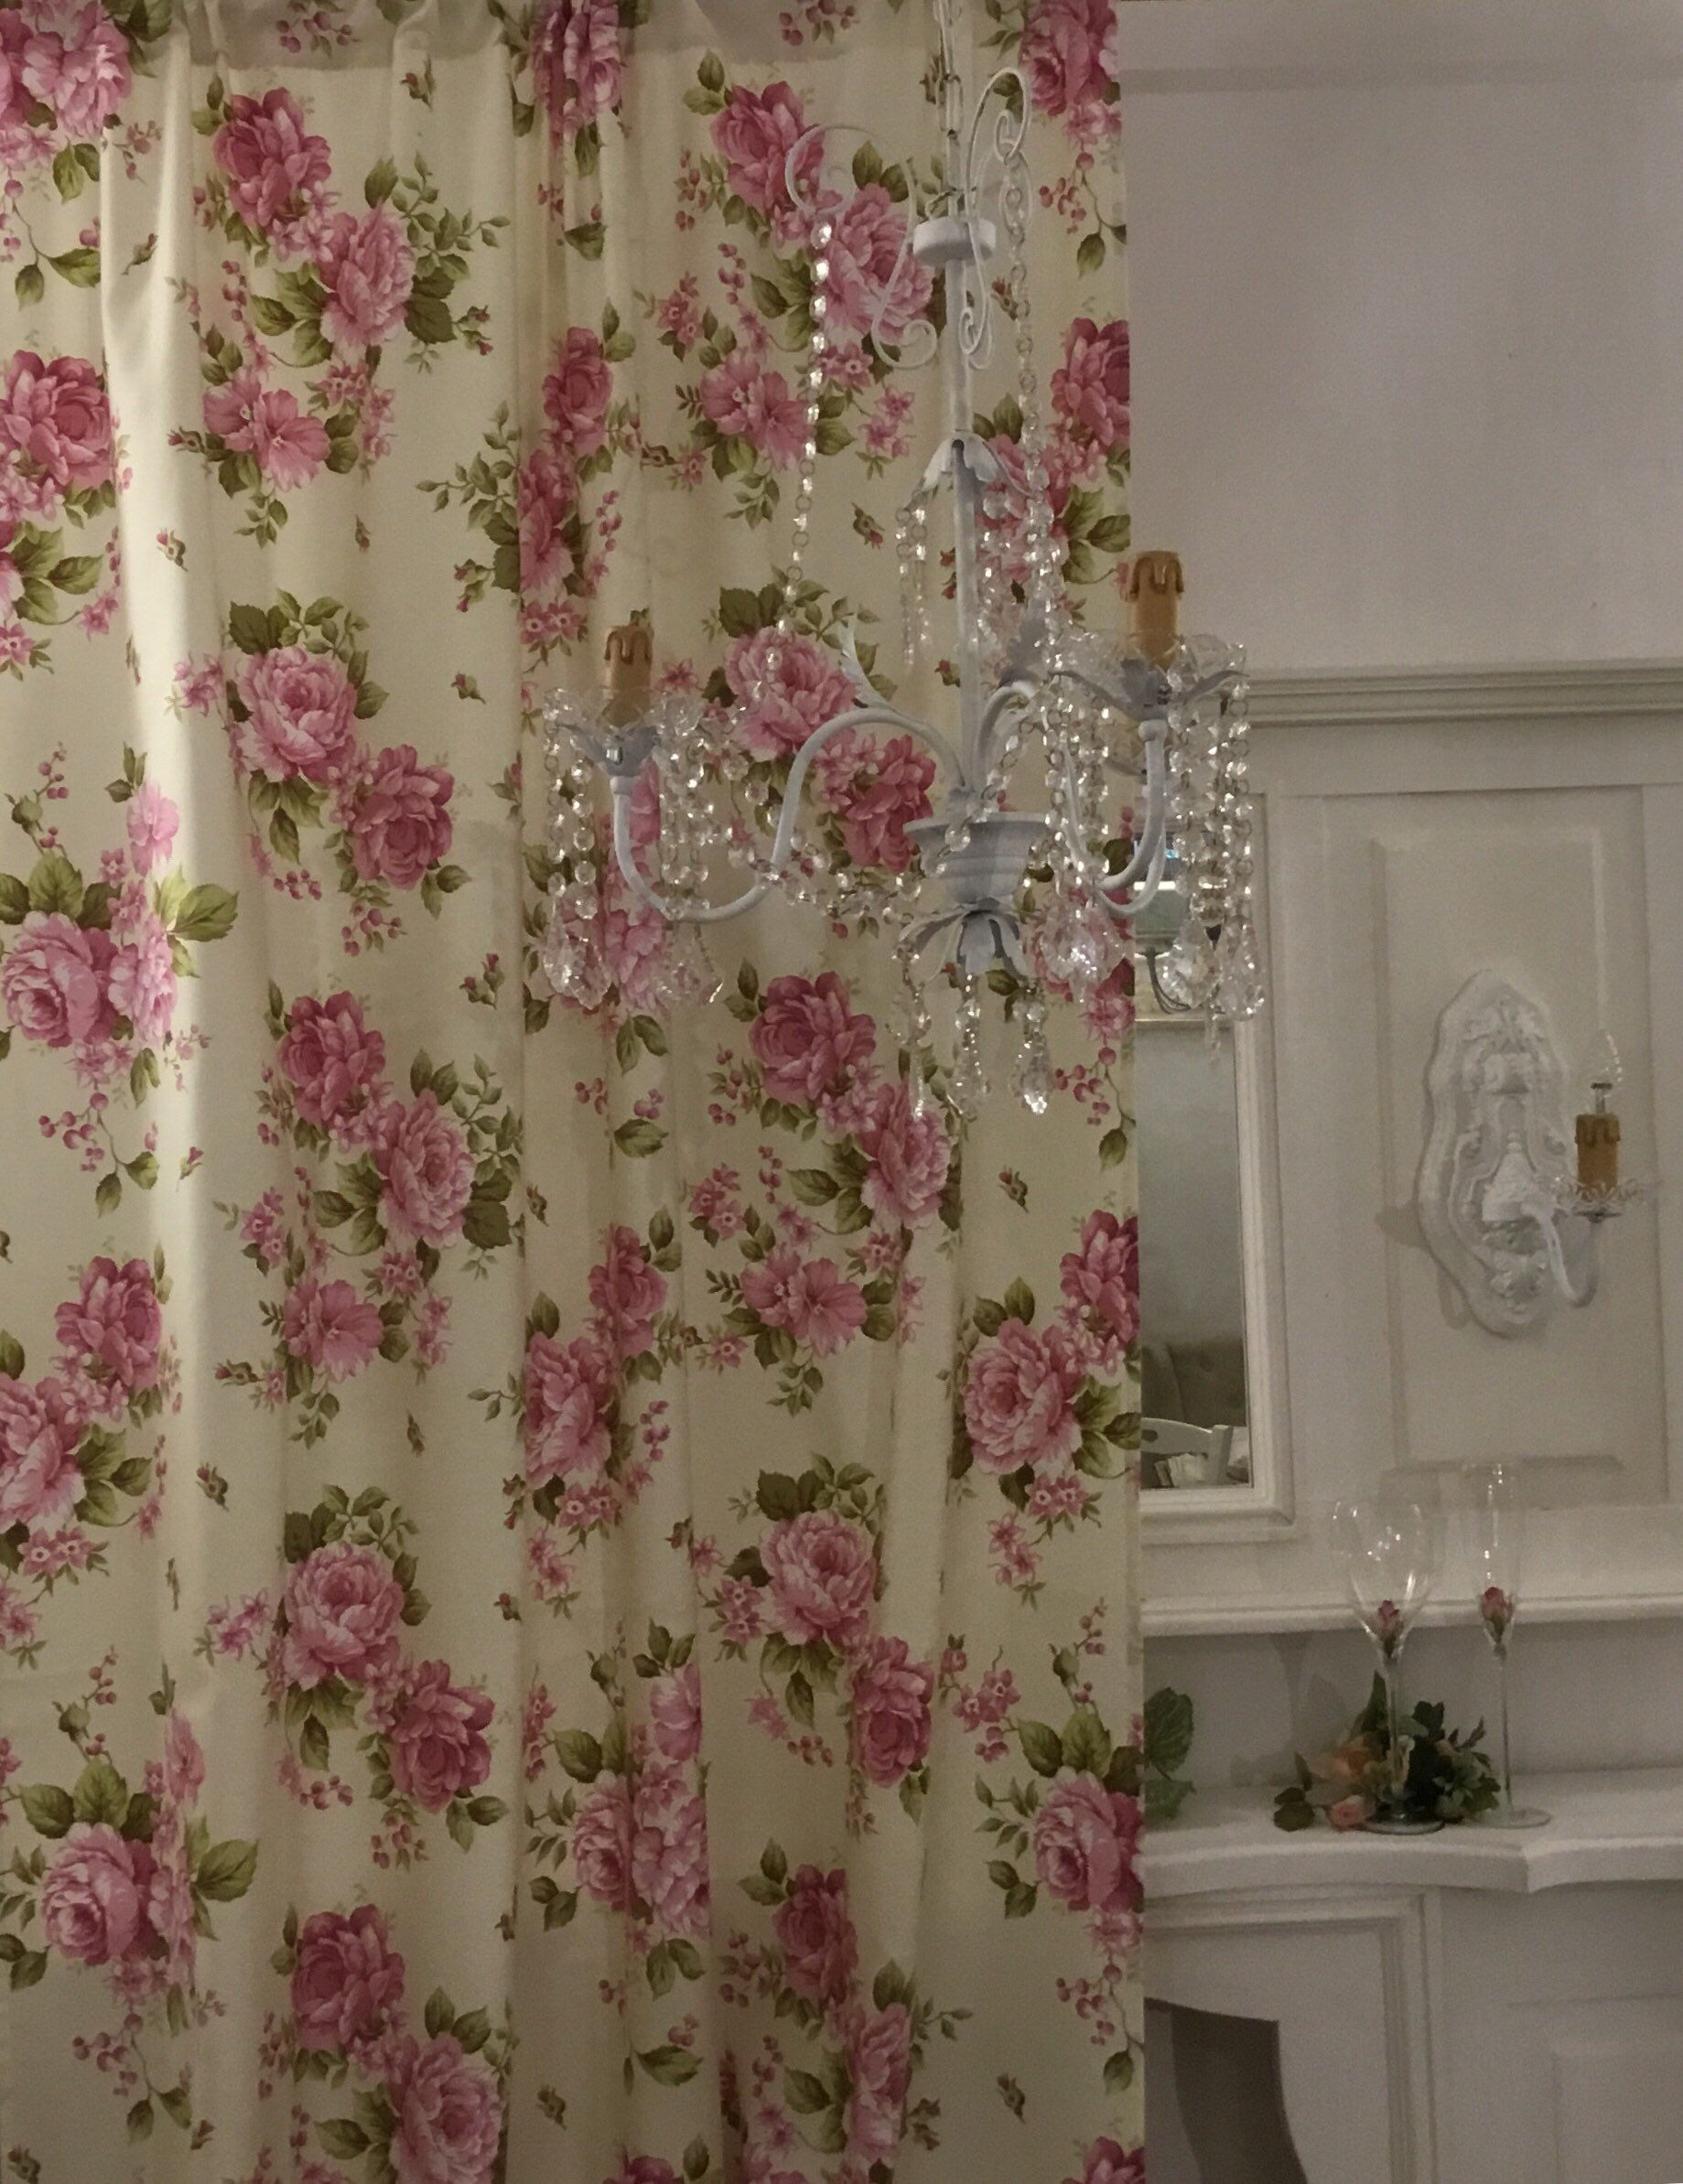 Pink Flower Curtains Shabbychic nel 2020   Tende a fiori ...